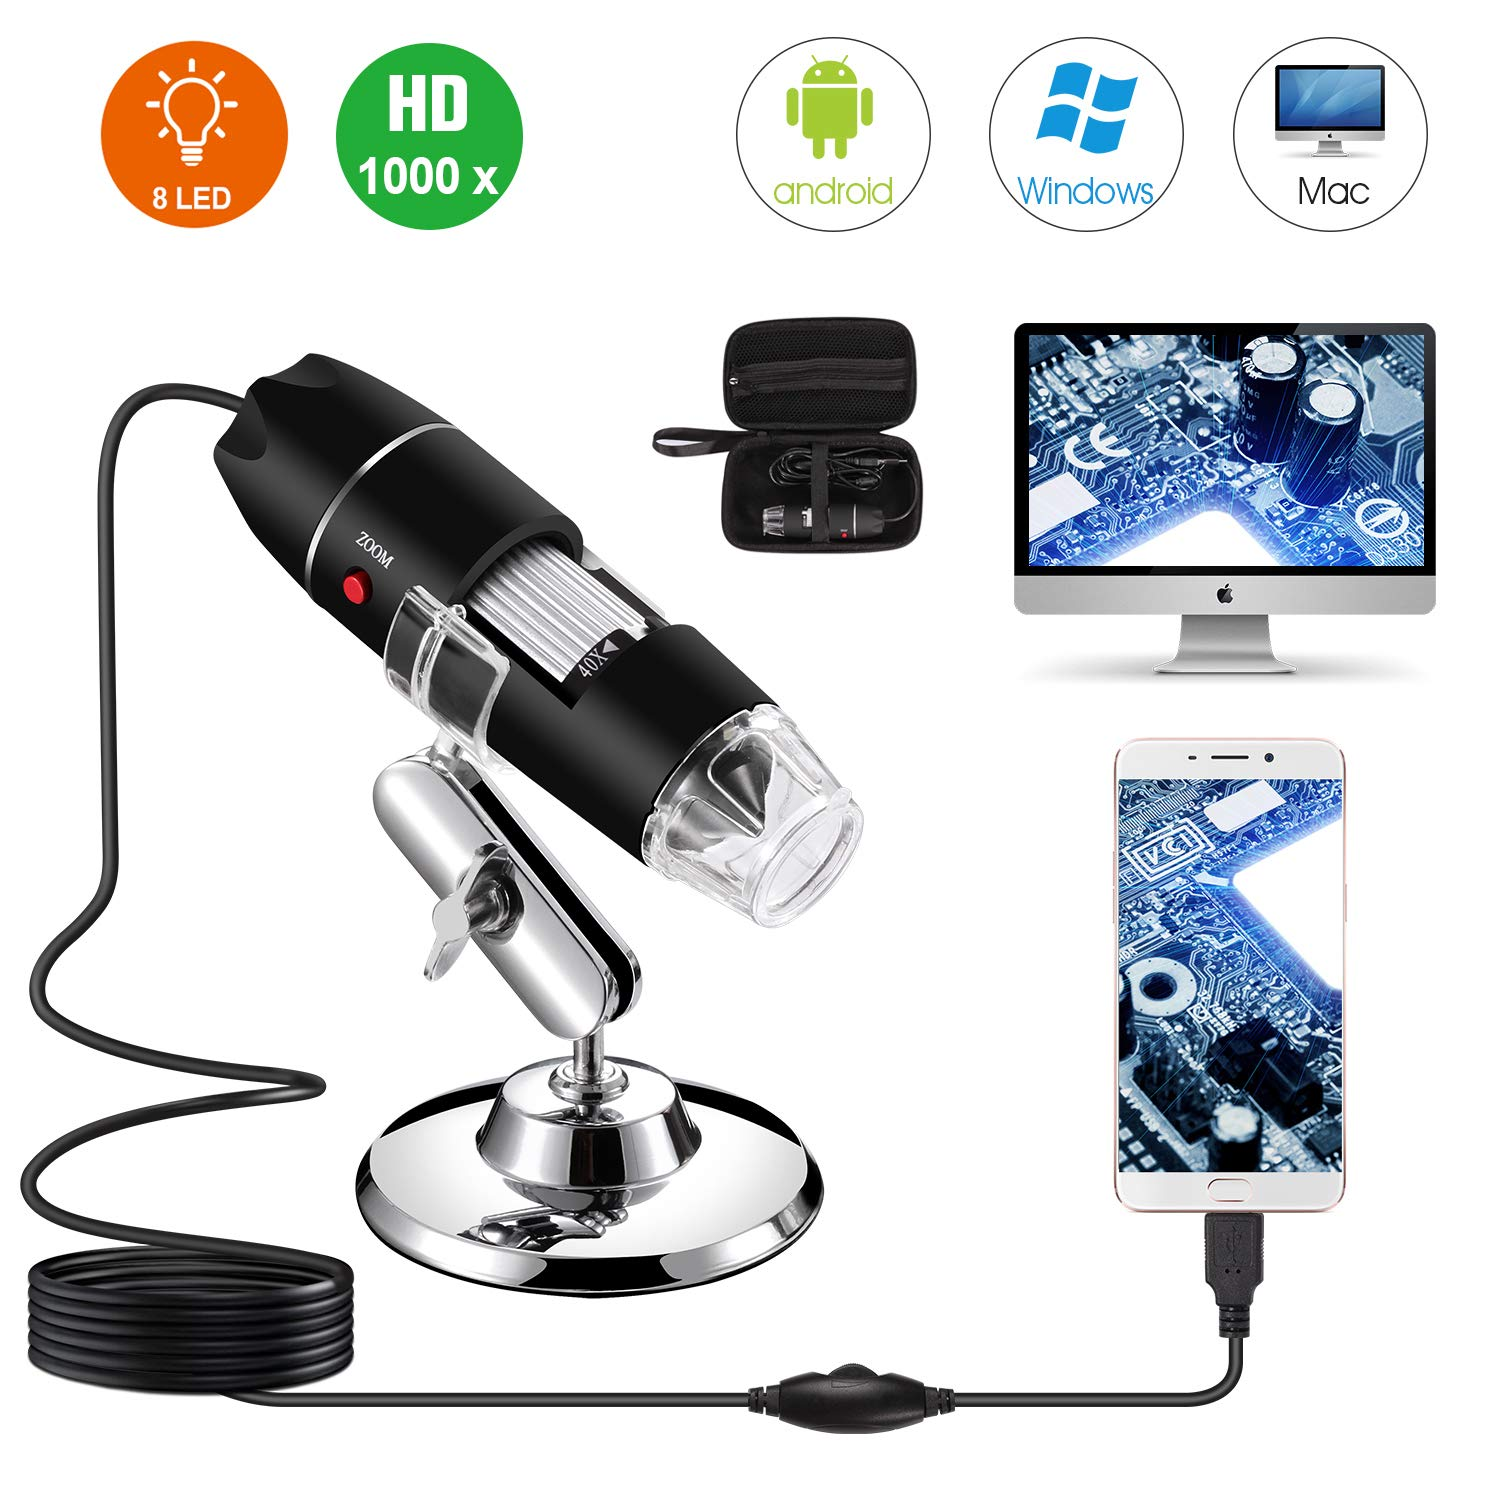 USB Digital Microscope 40X to 1000X, Bysameyee 8 LED Magnification Endoscope Camera with Carrying Case & Metal Stand, Compatible for Android Windows 7 8 10 Linux Mac by Bysameyee